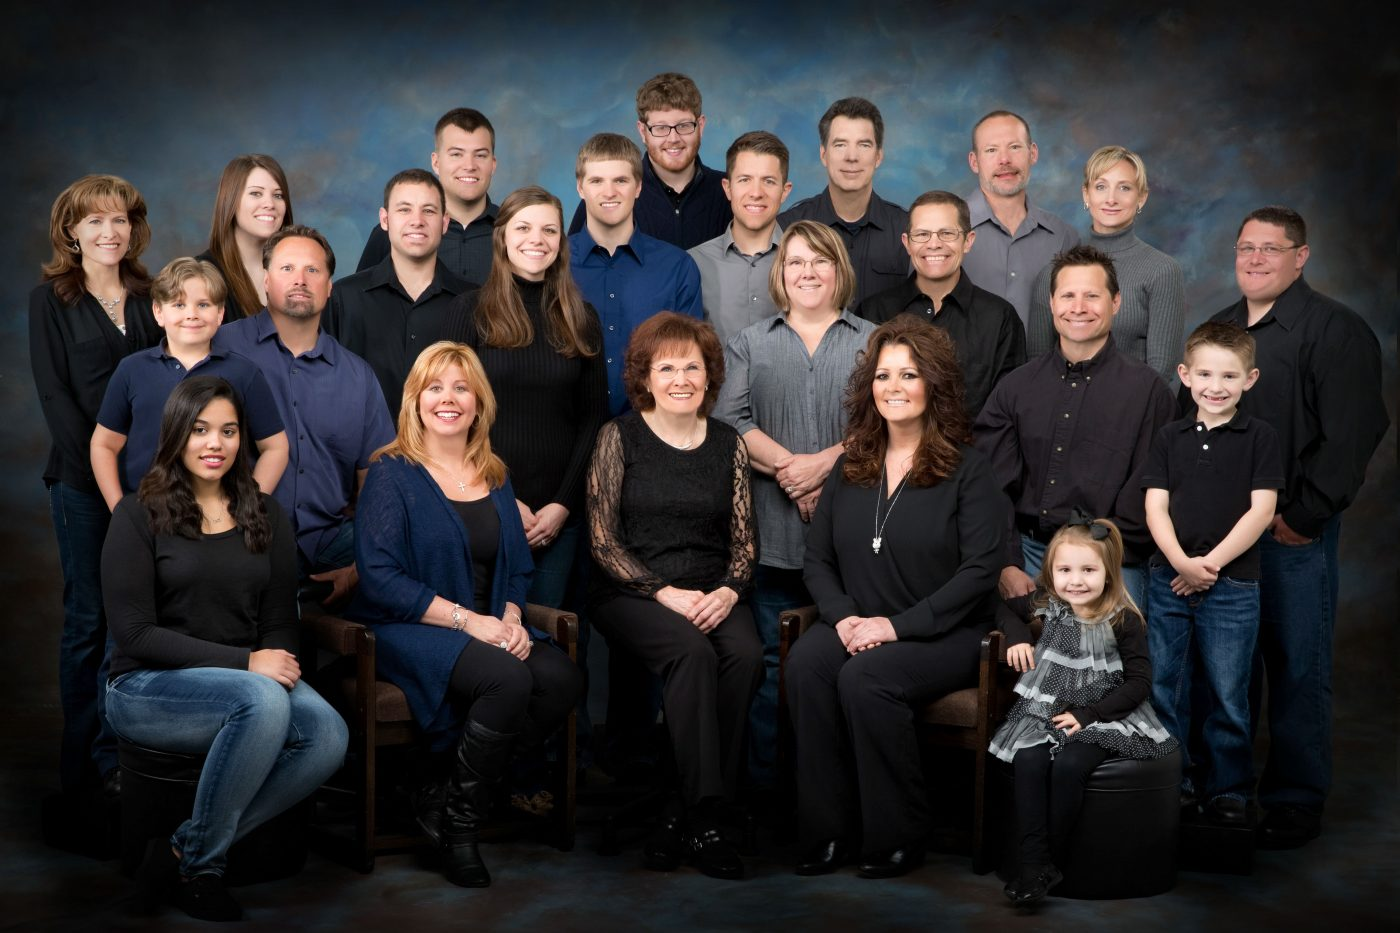 A family of 23 in black, blue and grey.